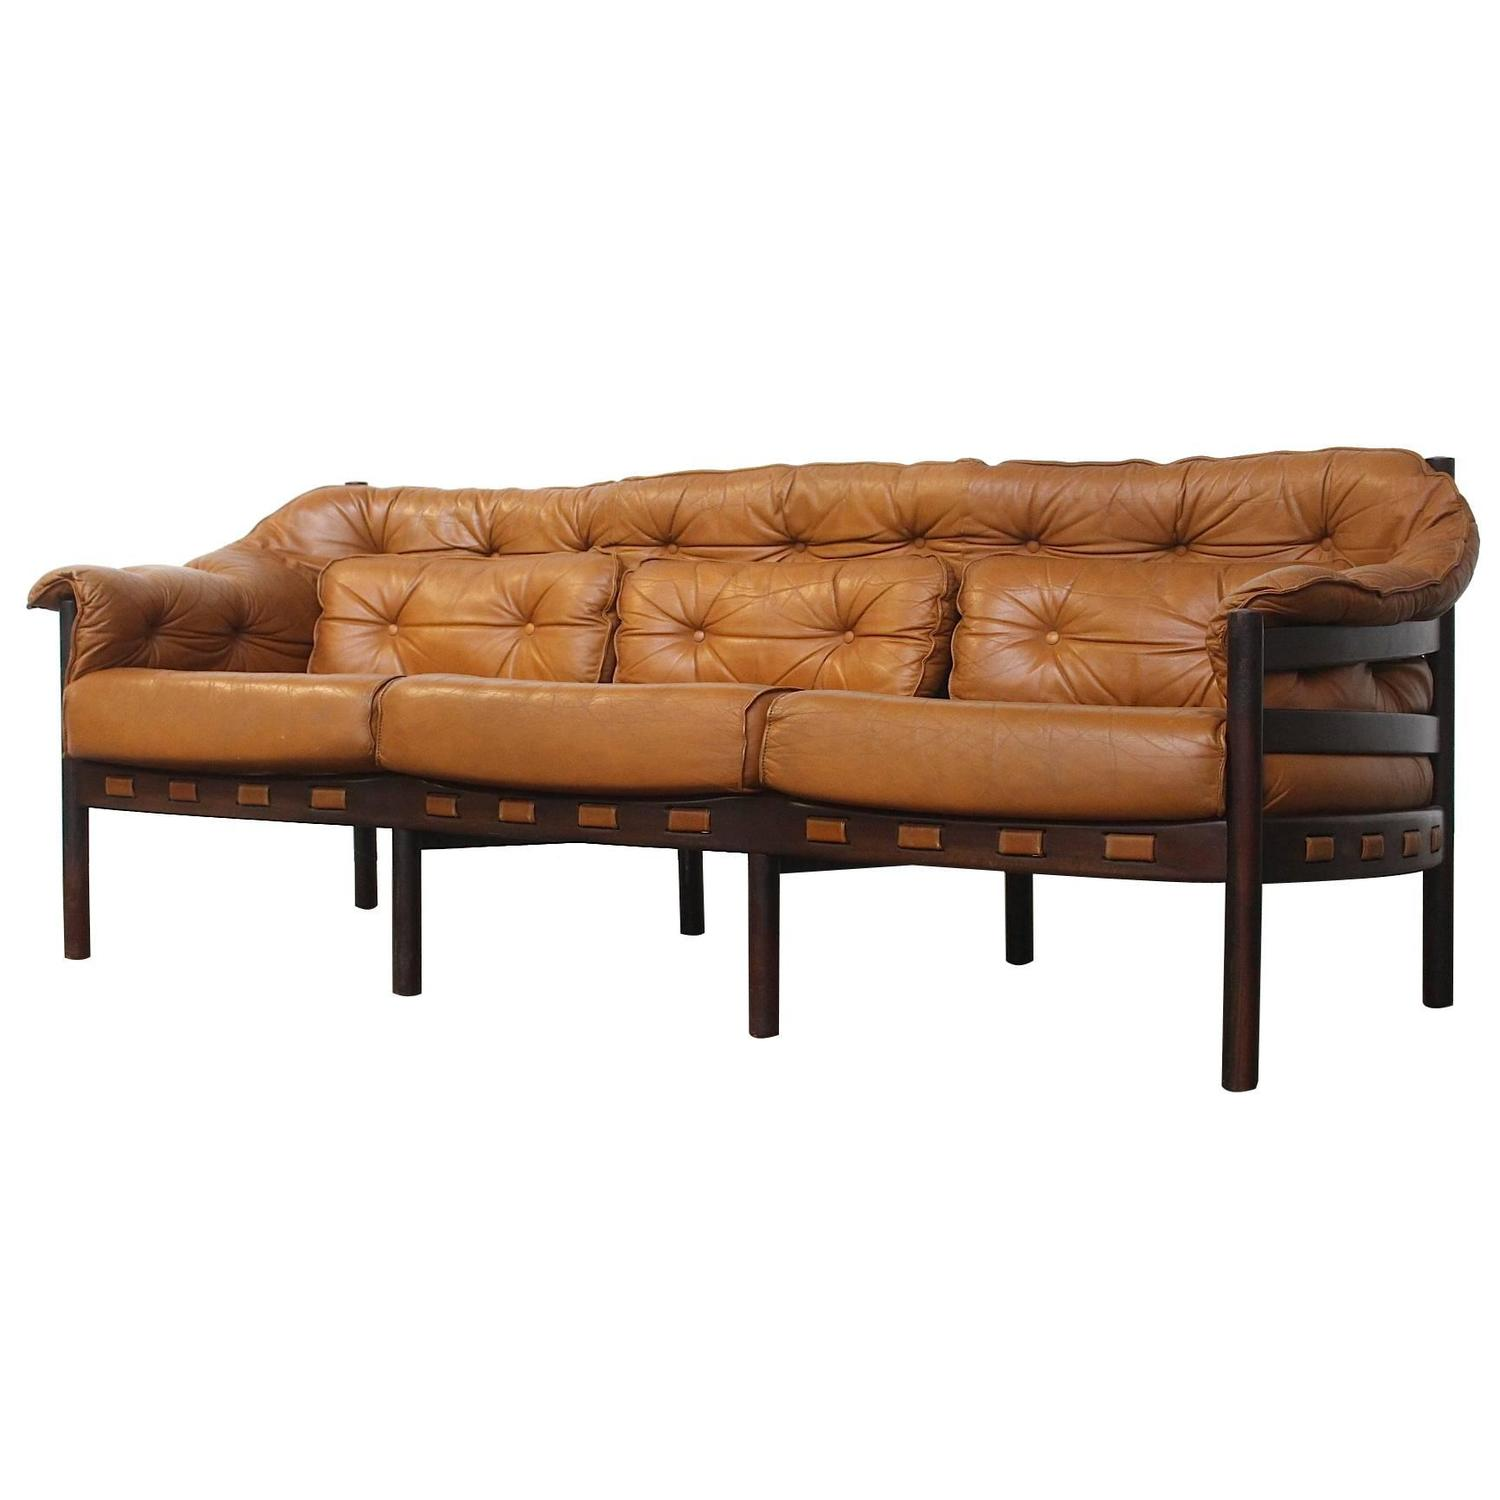 Tufted Leather Camel Colored Three-Seat Arne Norell Sofa ...